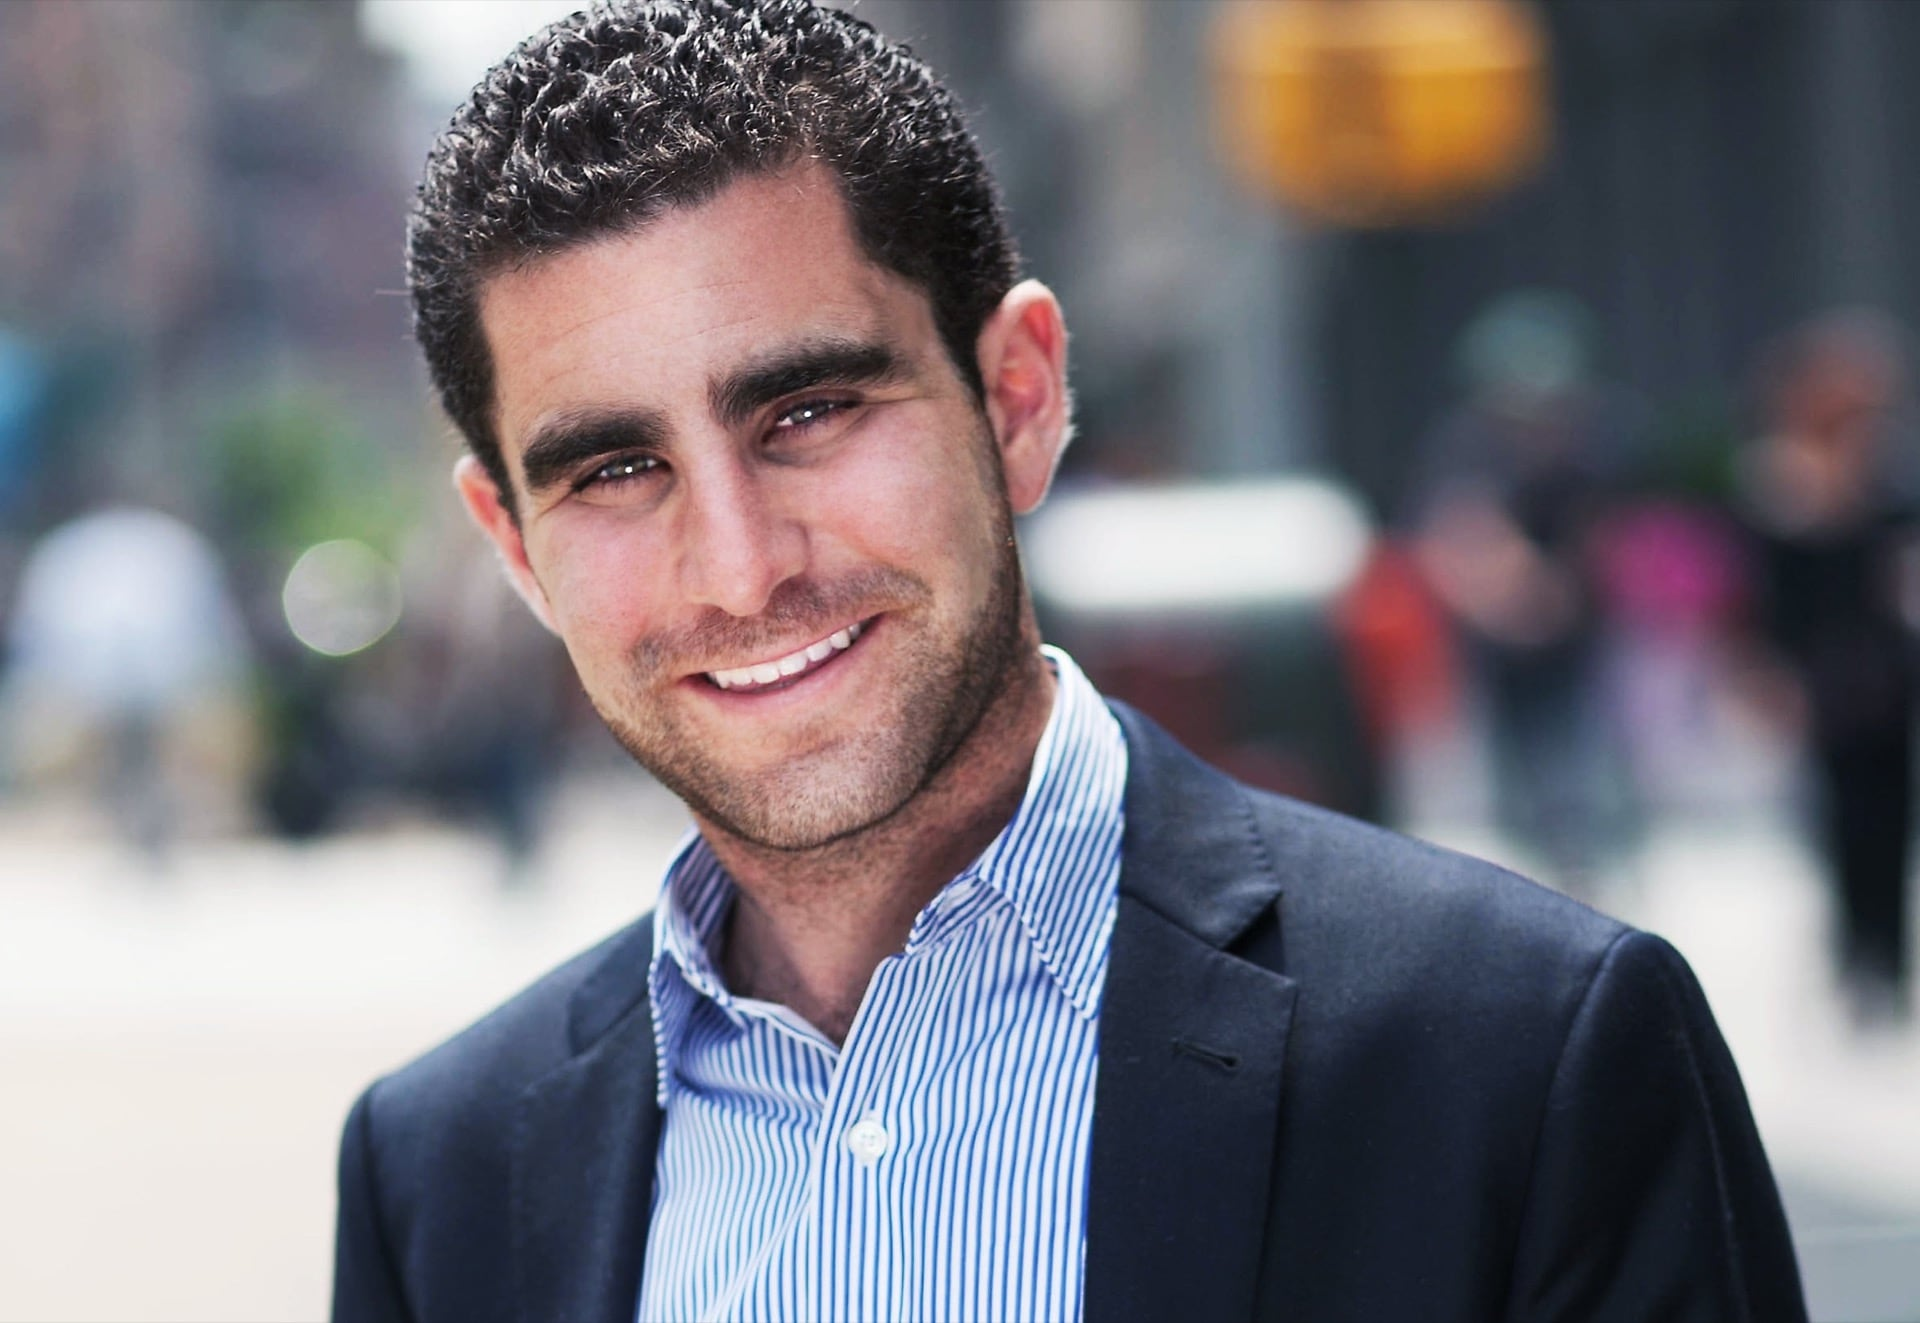 Charlie Shrem Begins a Two Year Prison Sentence